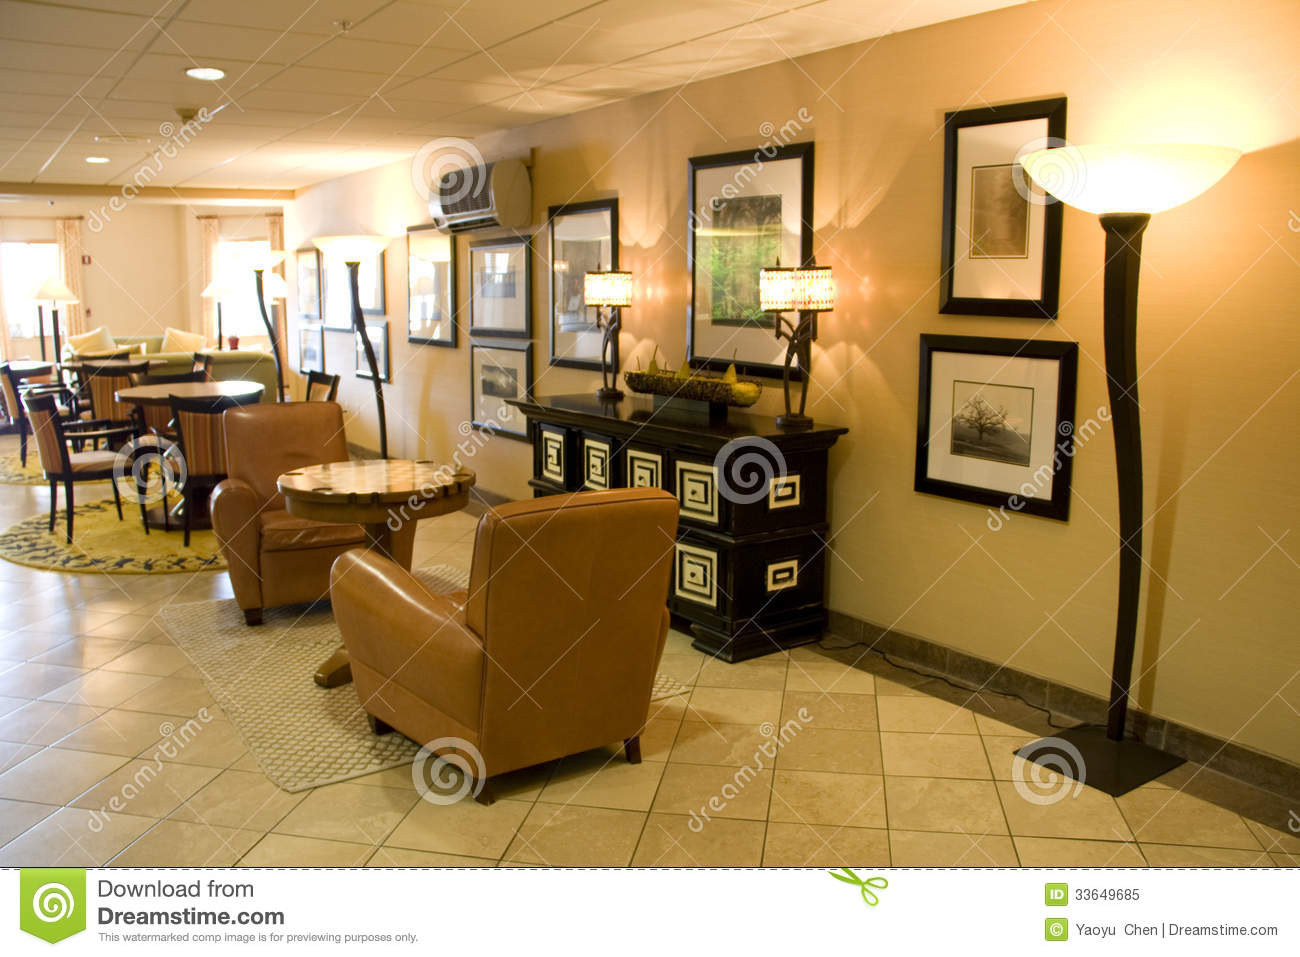 Hotel Lobby With Nice Interiors And Furniture. Phoenix Inn Vancouver Washington  State.